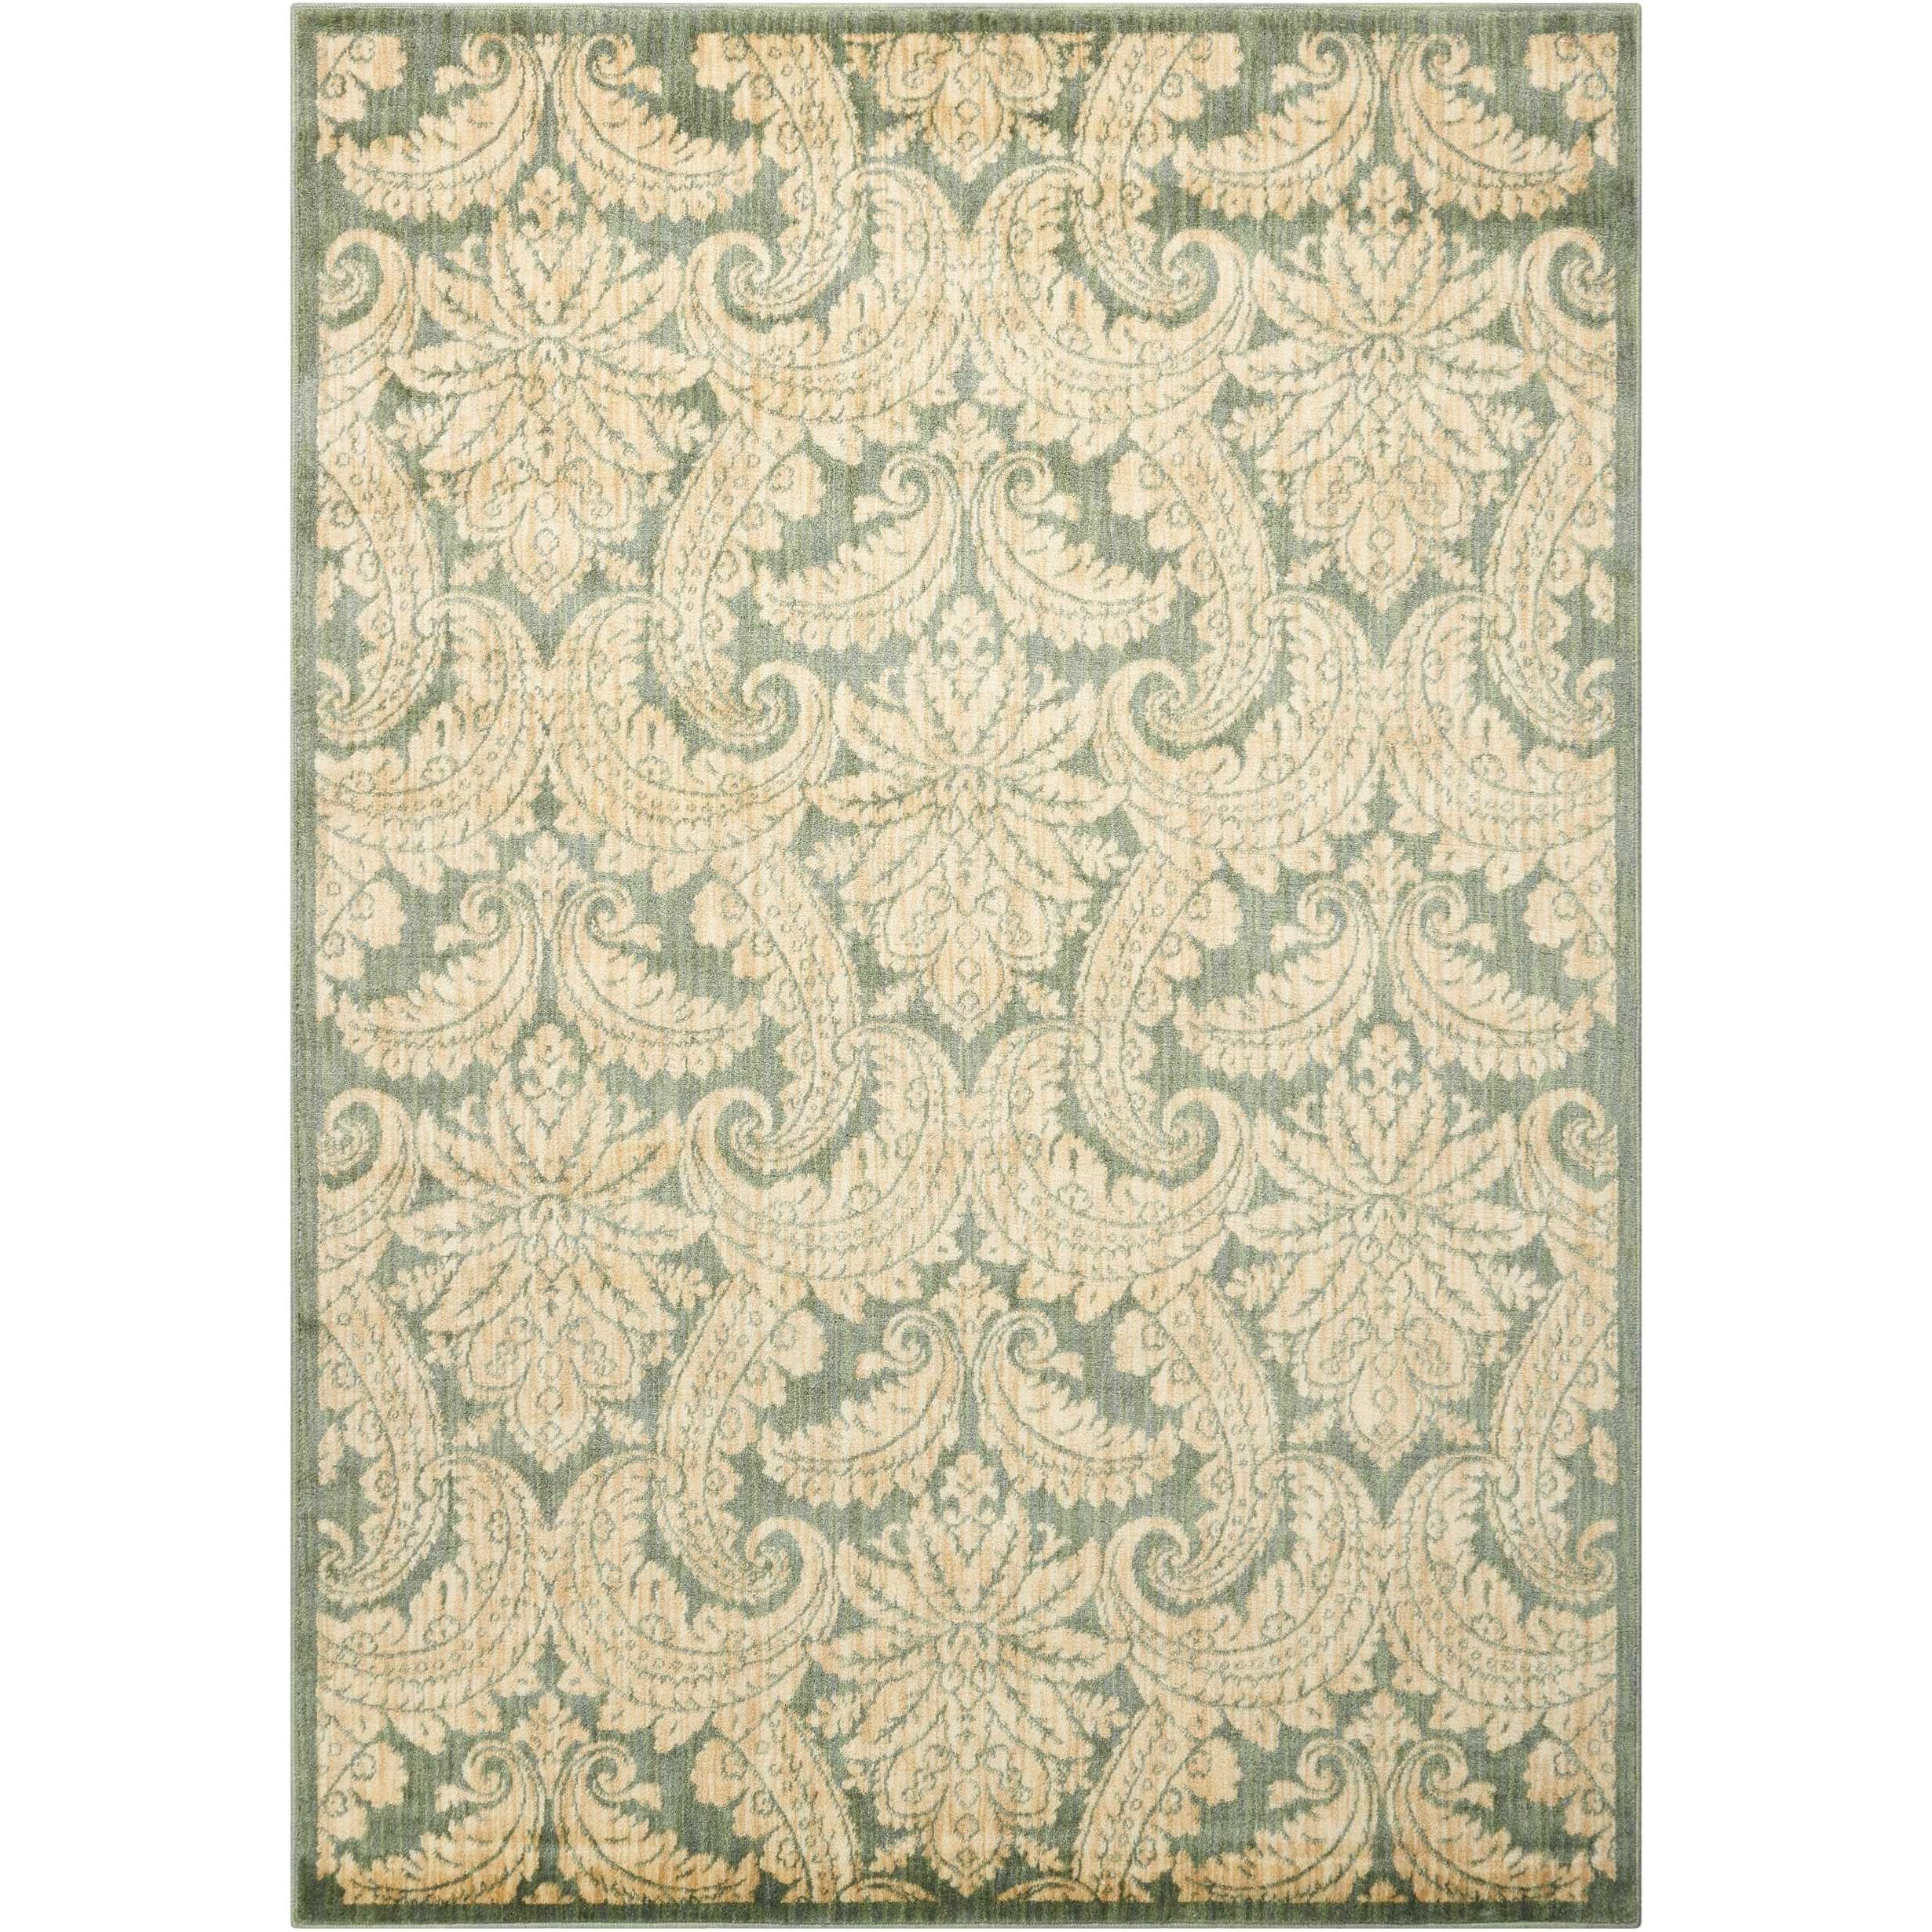 """Aristo 5'3"""" x 7'5"""" Blue/Ivory Rectangle Rug by Nourison at Sprintz Furniture"""